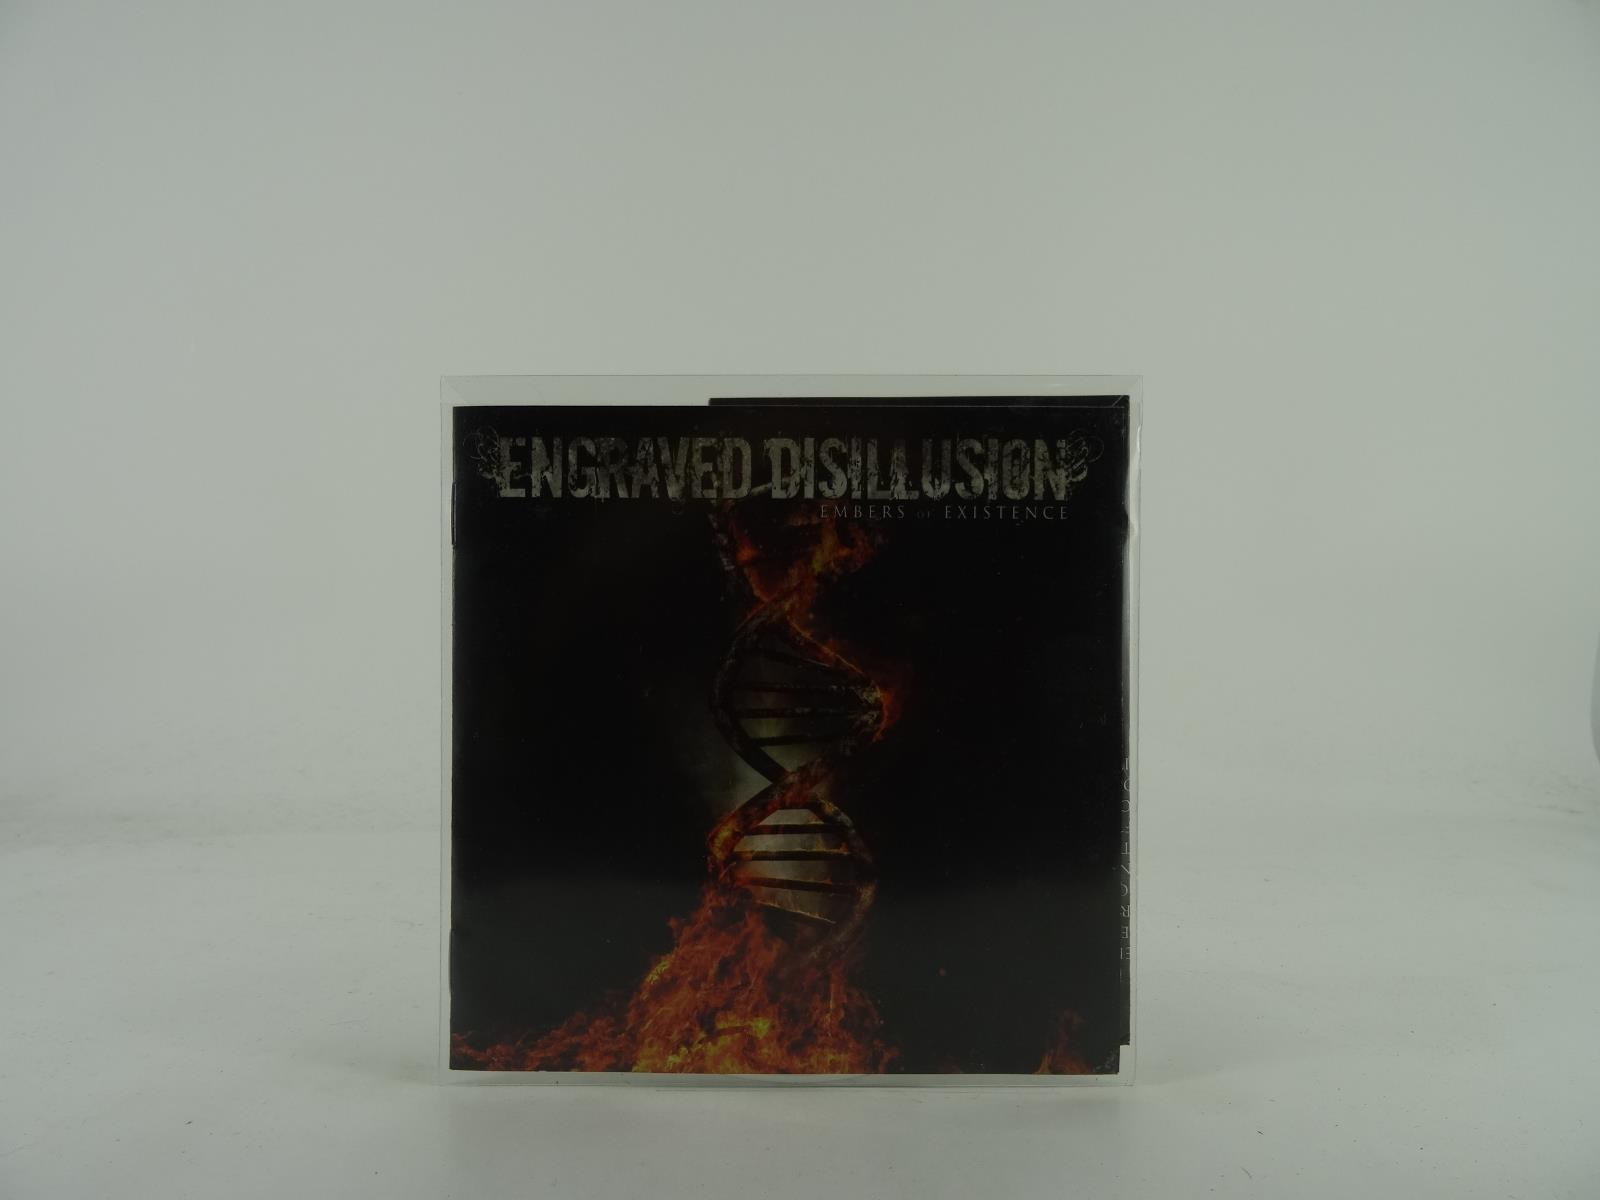 ENGRAVED DISILLUSION, EMBERS OF EXISTENCE, 409, EX/EX, 10 Track, Promo CD Album,